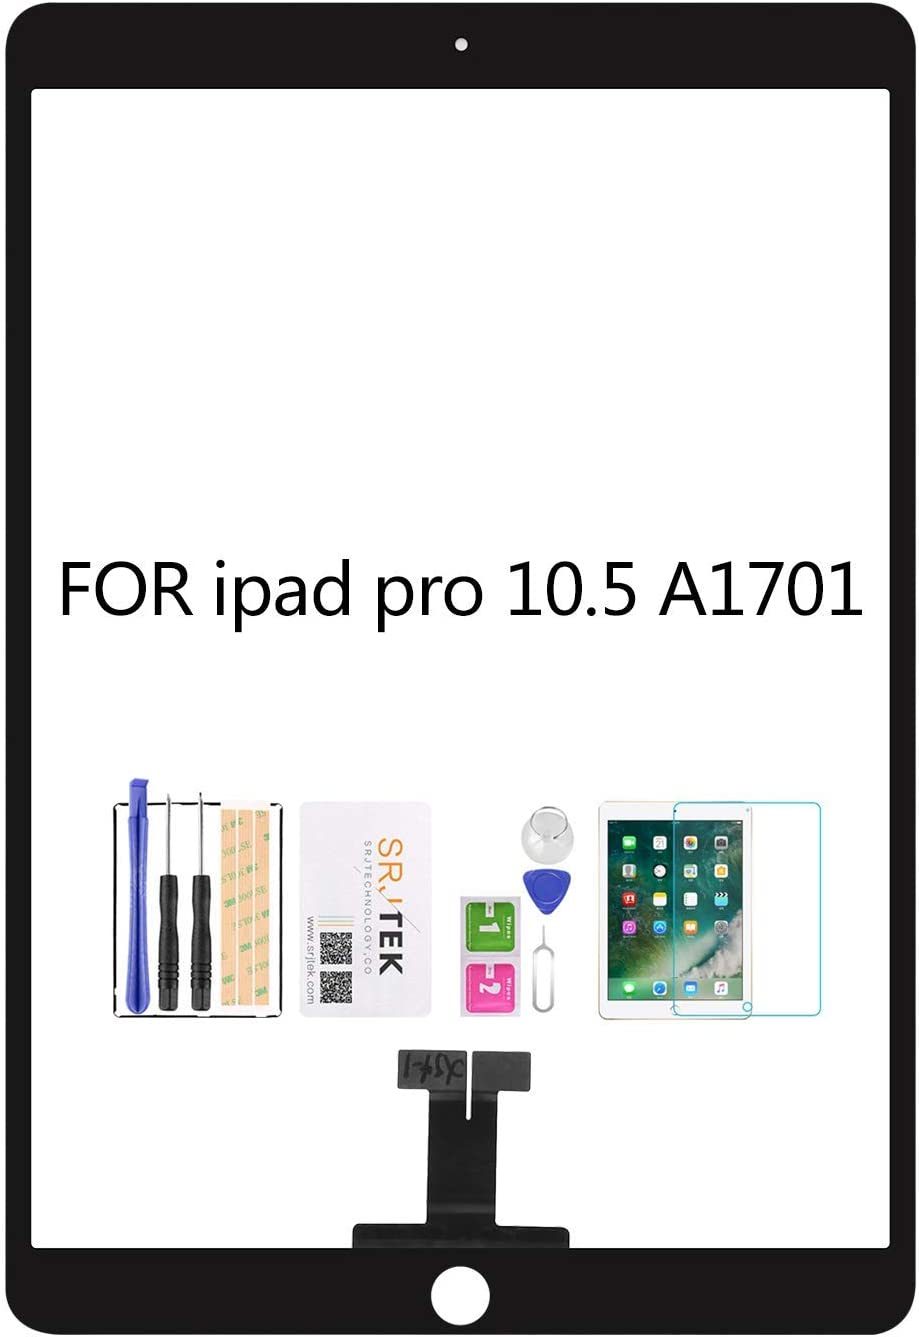 SRJTEK for ipad pro 10.5 A1701 A1709 Touch Screen Replacement Kit,(Not LCD, NO Instructions) Touch Digitizer,Glass Repair Parts,Include Tempered Glass (Black)